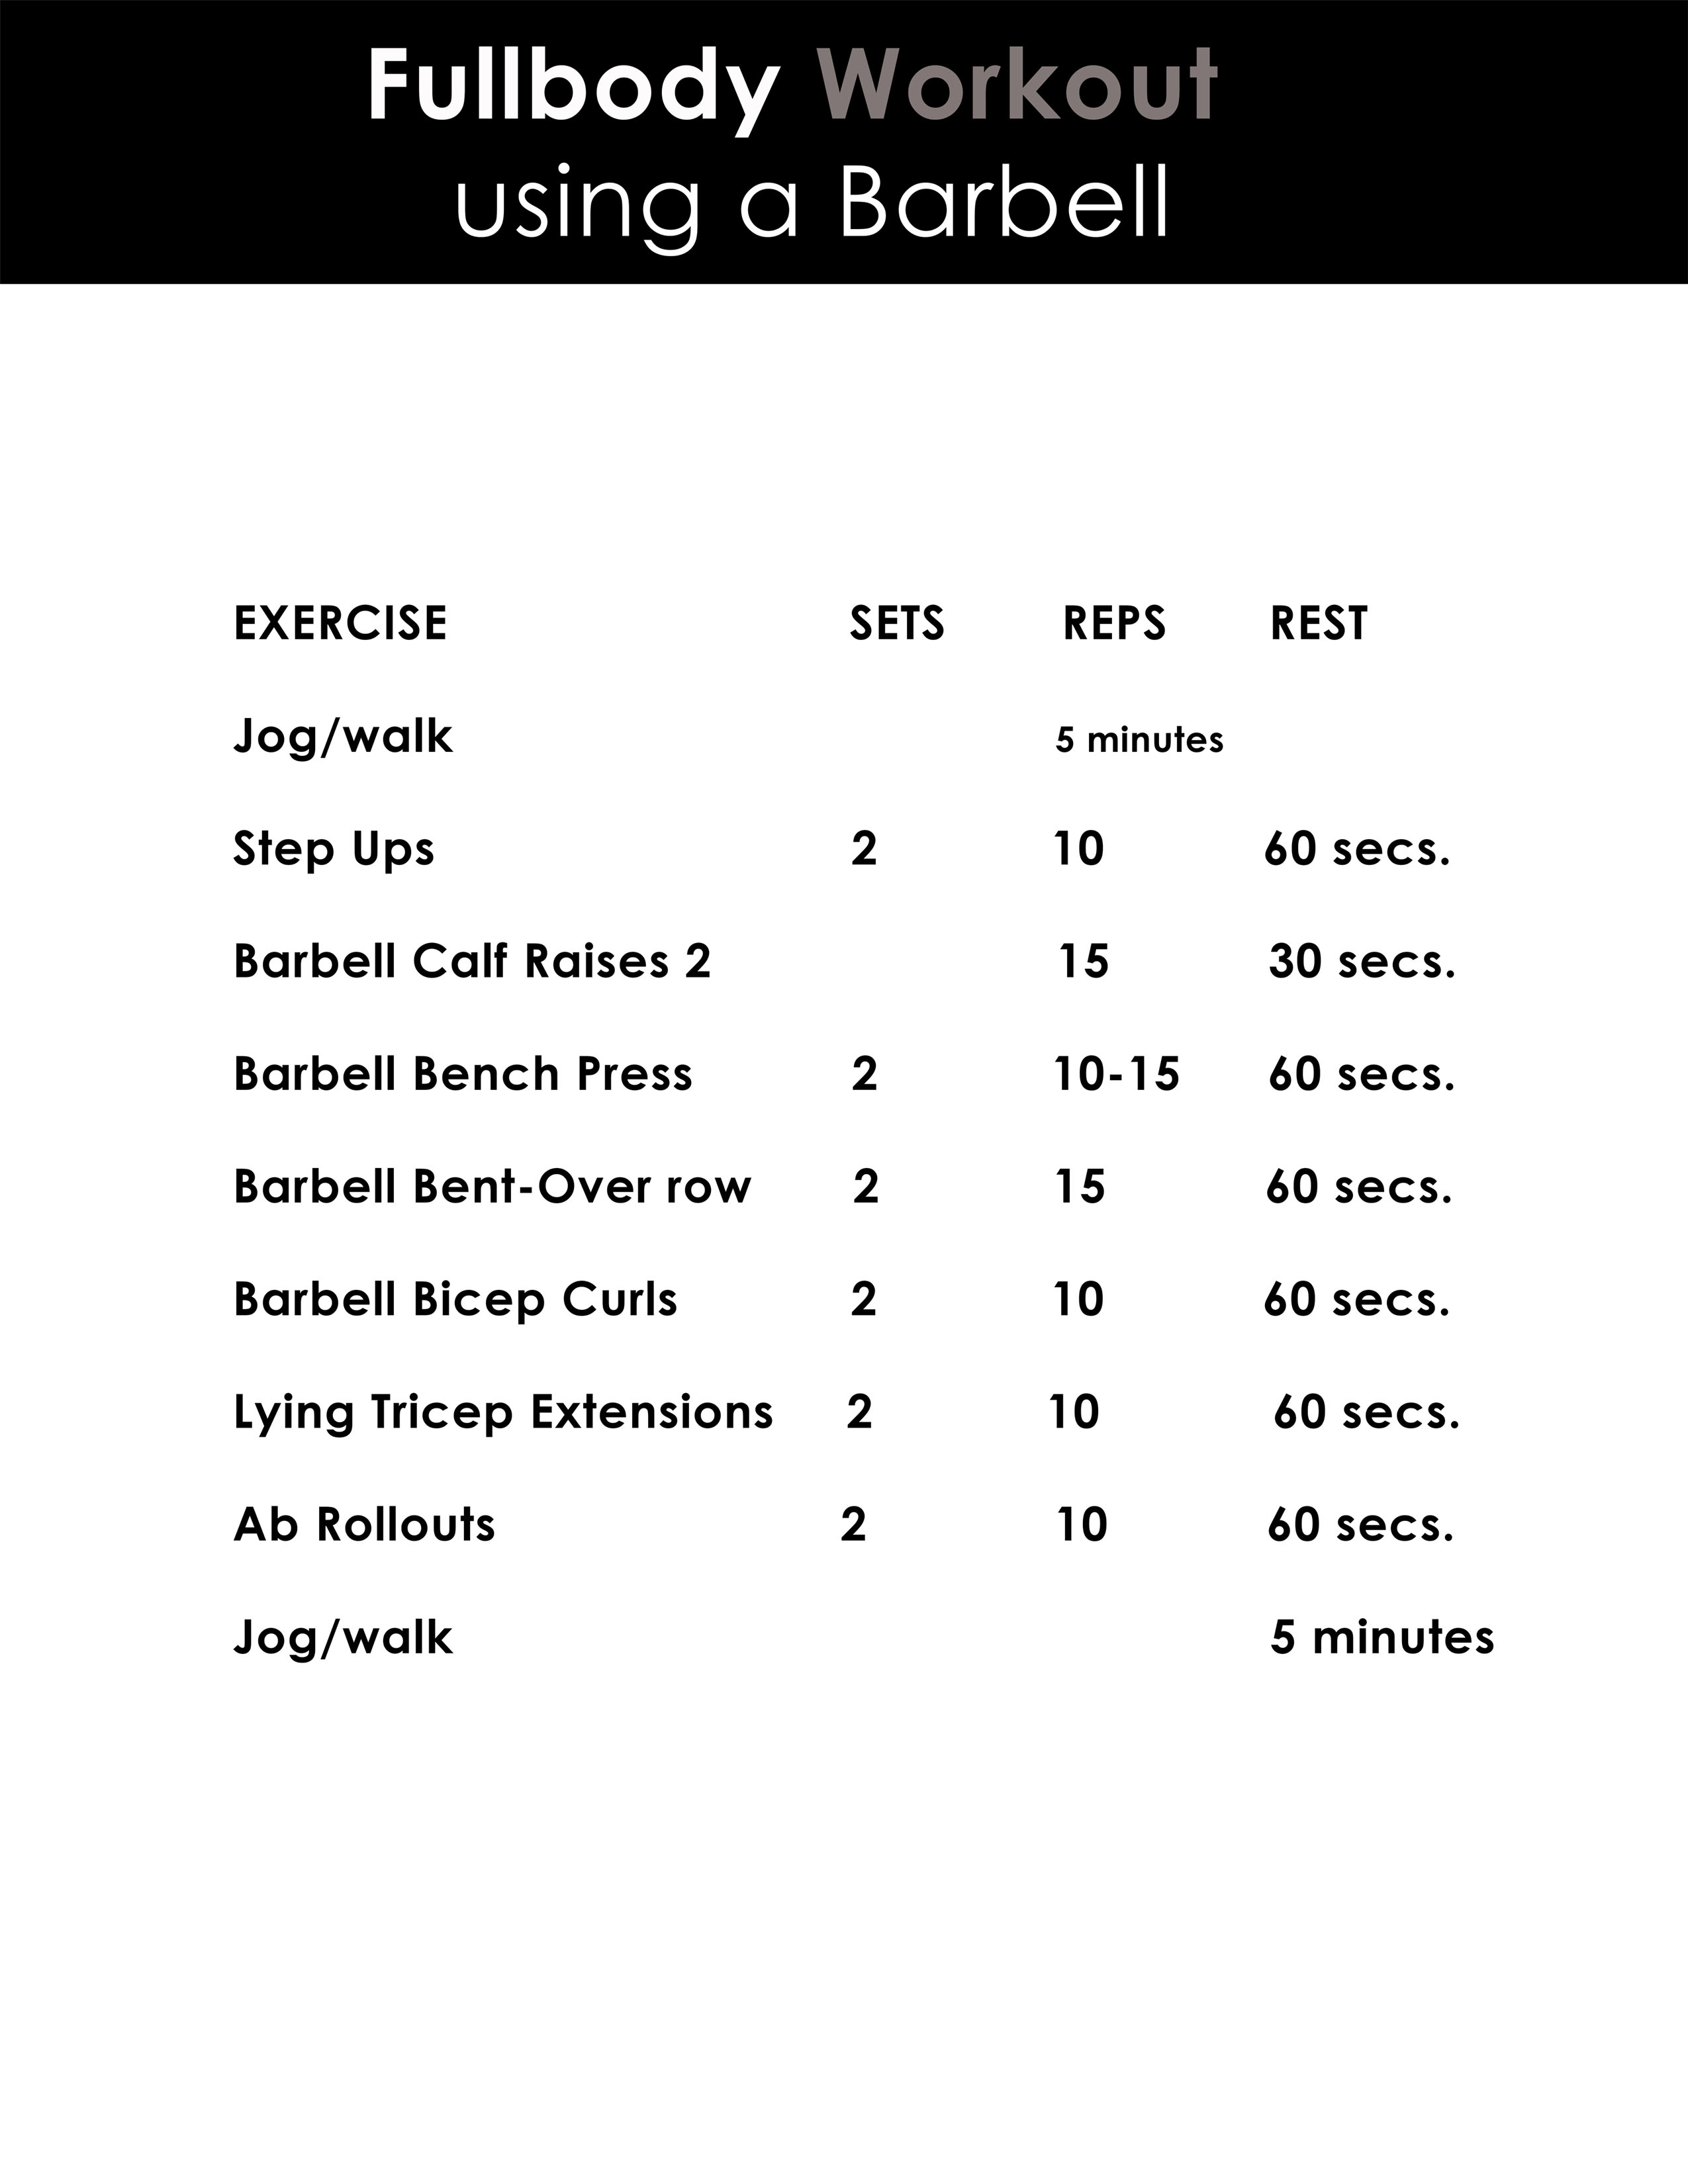 Fullbody barbell workout you can download and print.